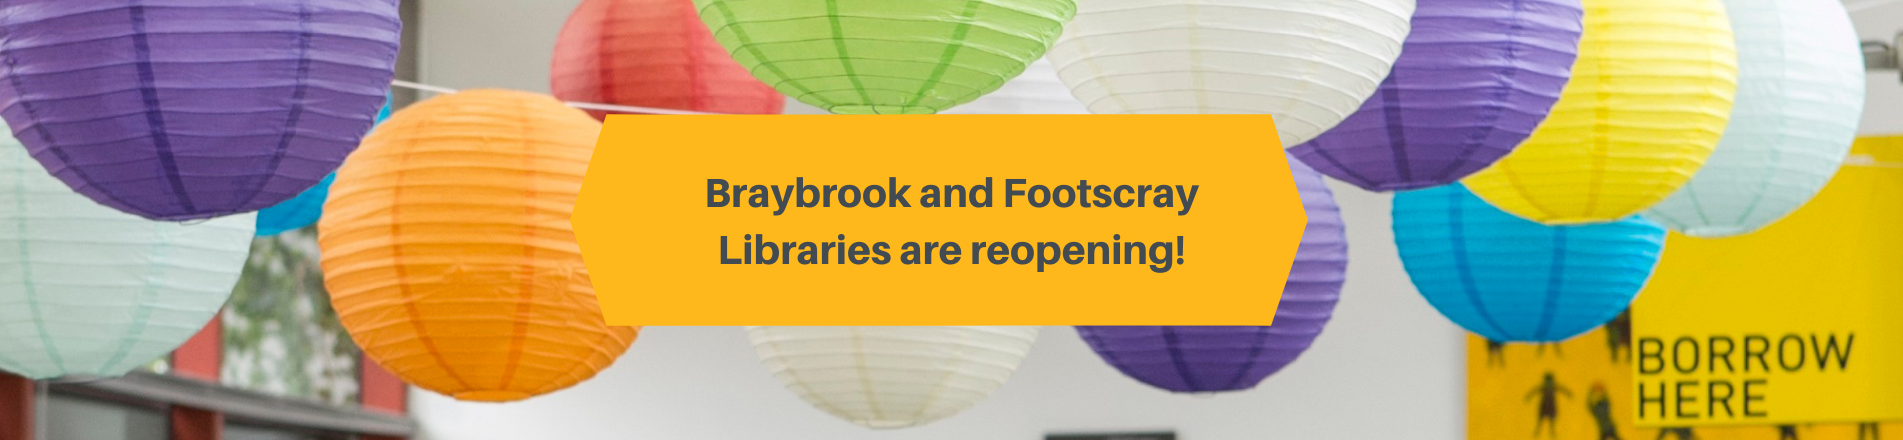 Braybrook-and-Footscray-reopening-Feb-17-slider.png